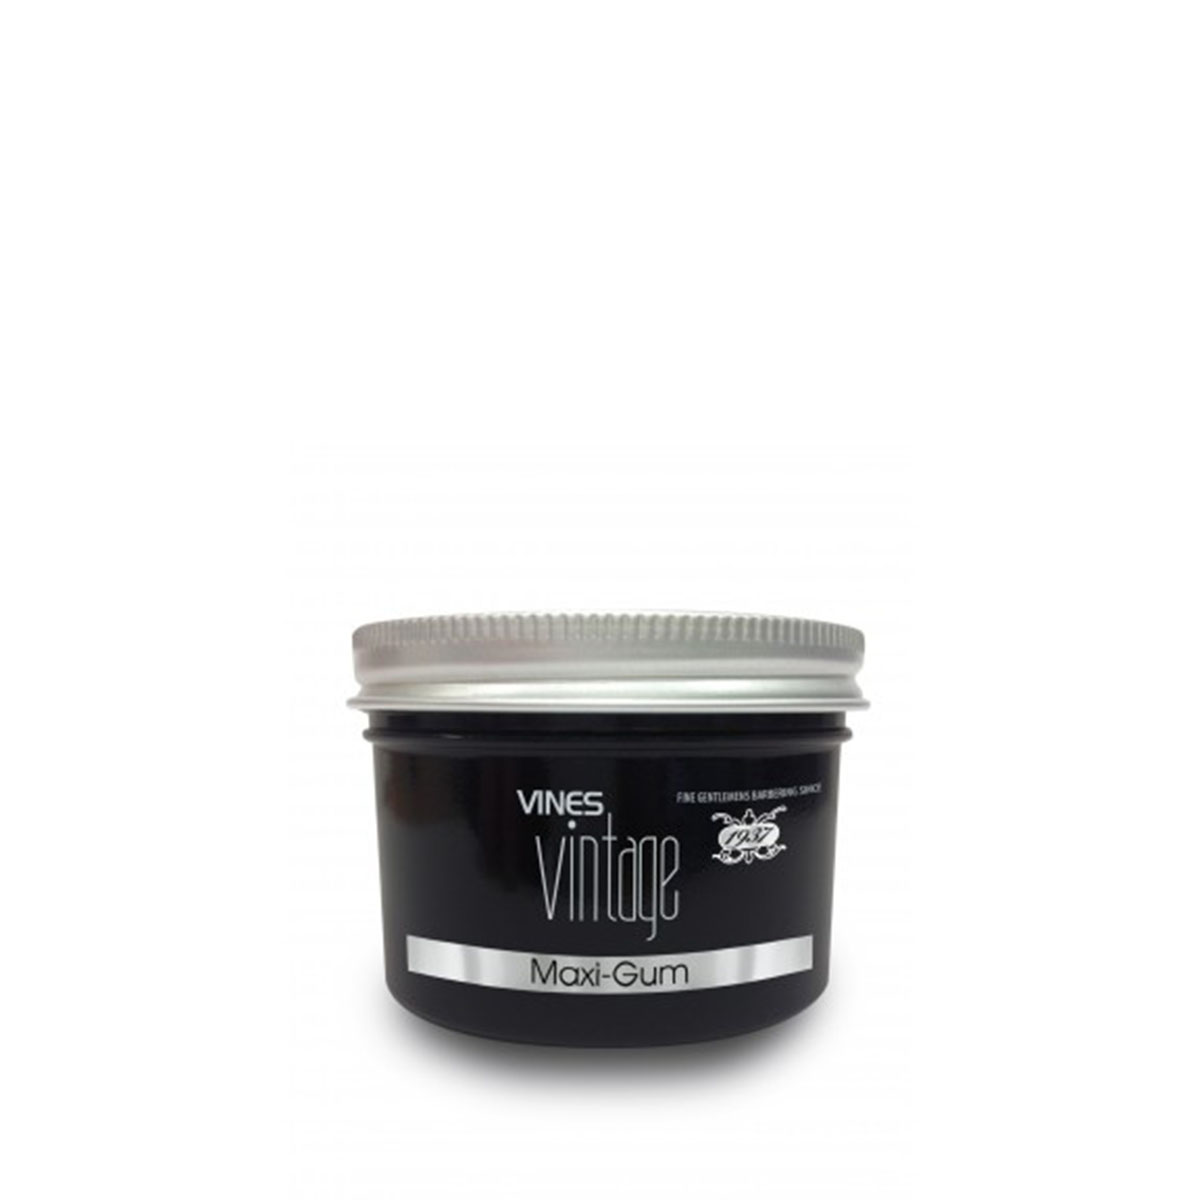 Maxi Gum 125ml Vines Vintage